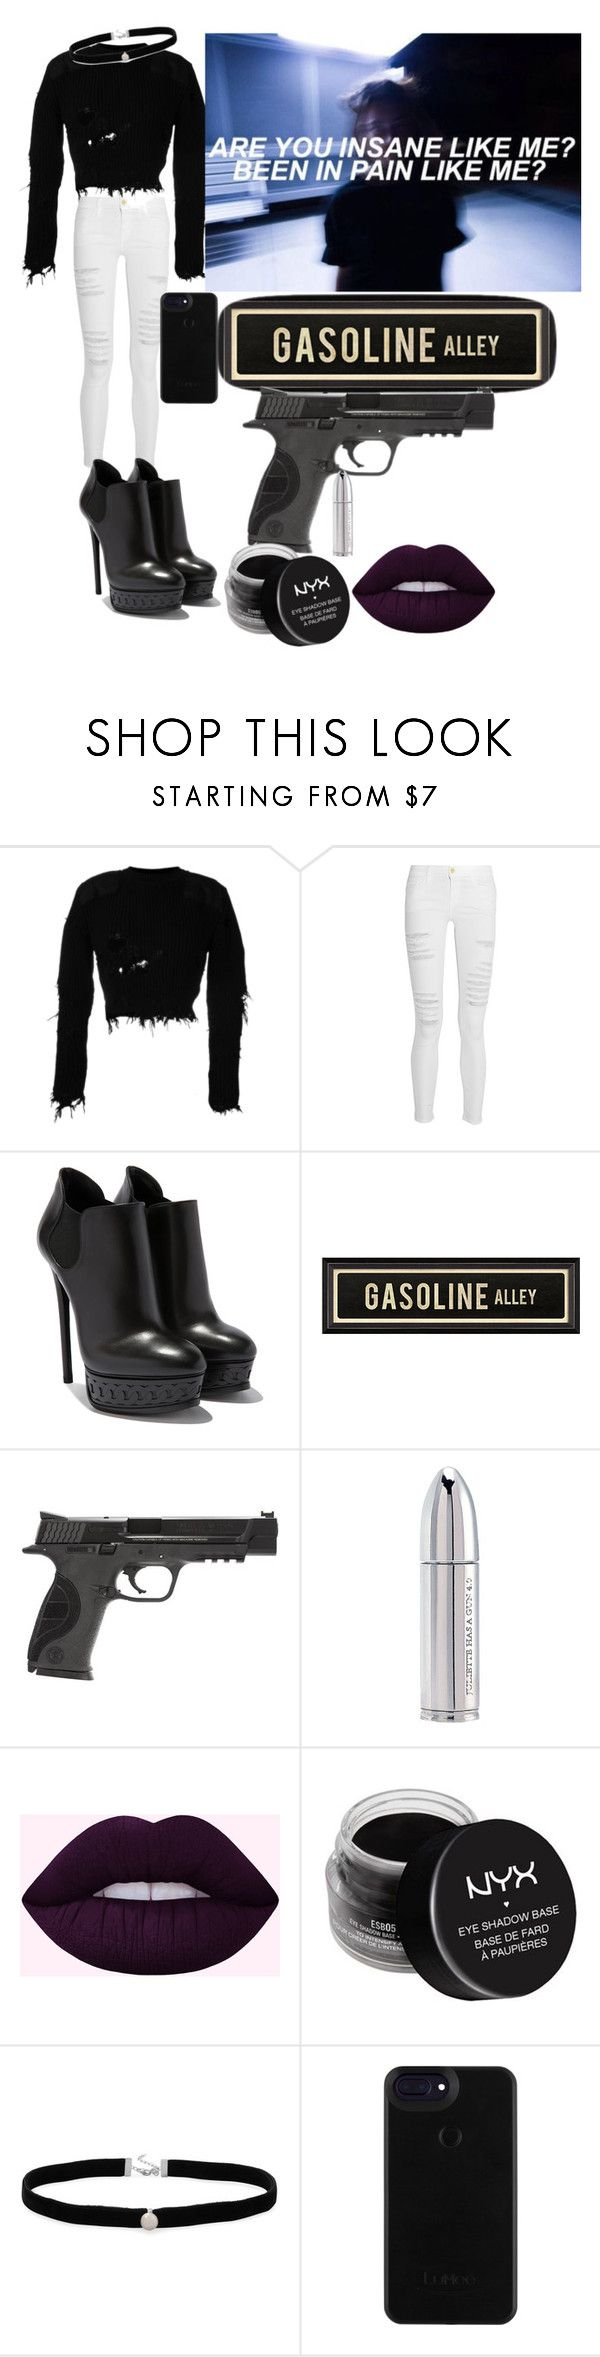 """""""Gasoline Halsey"""" by praygirlpray ❤ liked on Polyvore featuring Yeezy by Kanye West, Frame, Artisan, Smith & Wesson, Juliette Has A Gun, NYX and Amanda Rose Collection"""